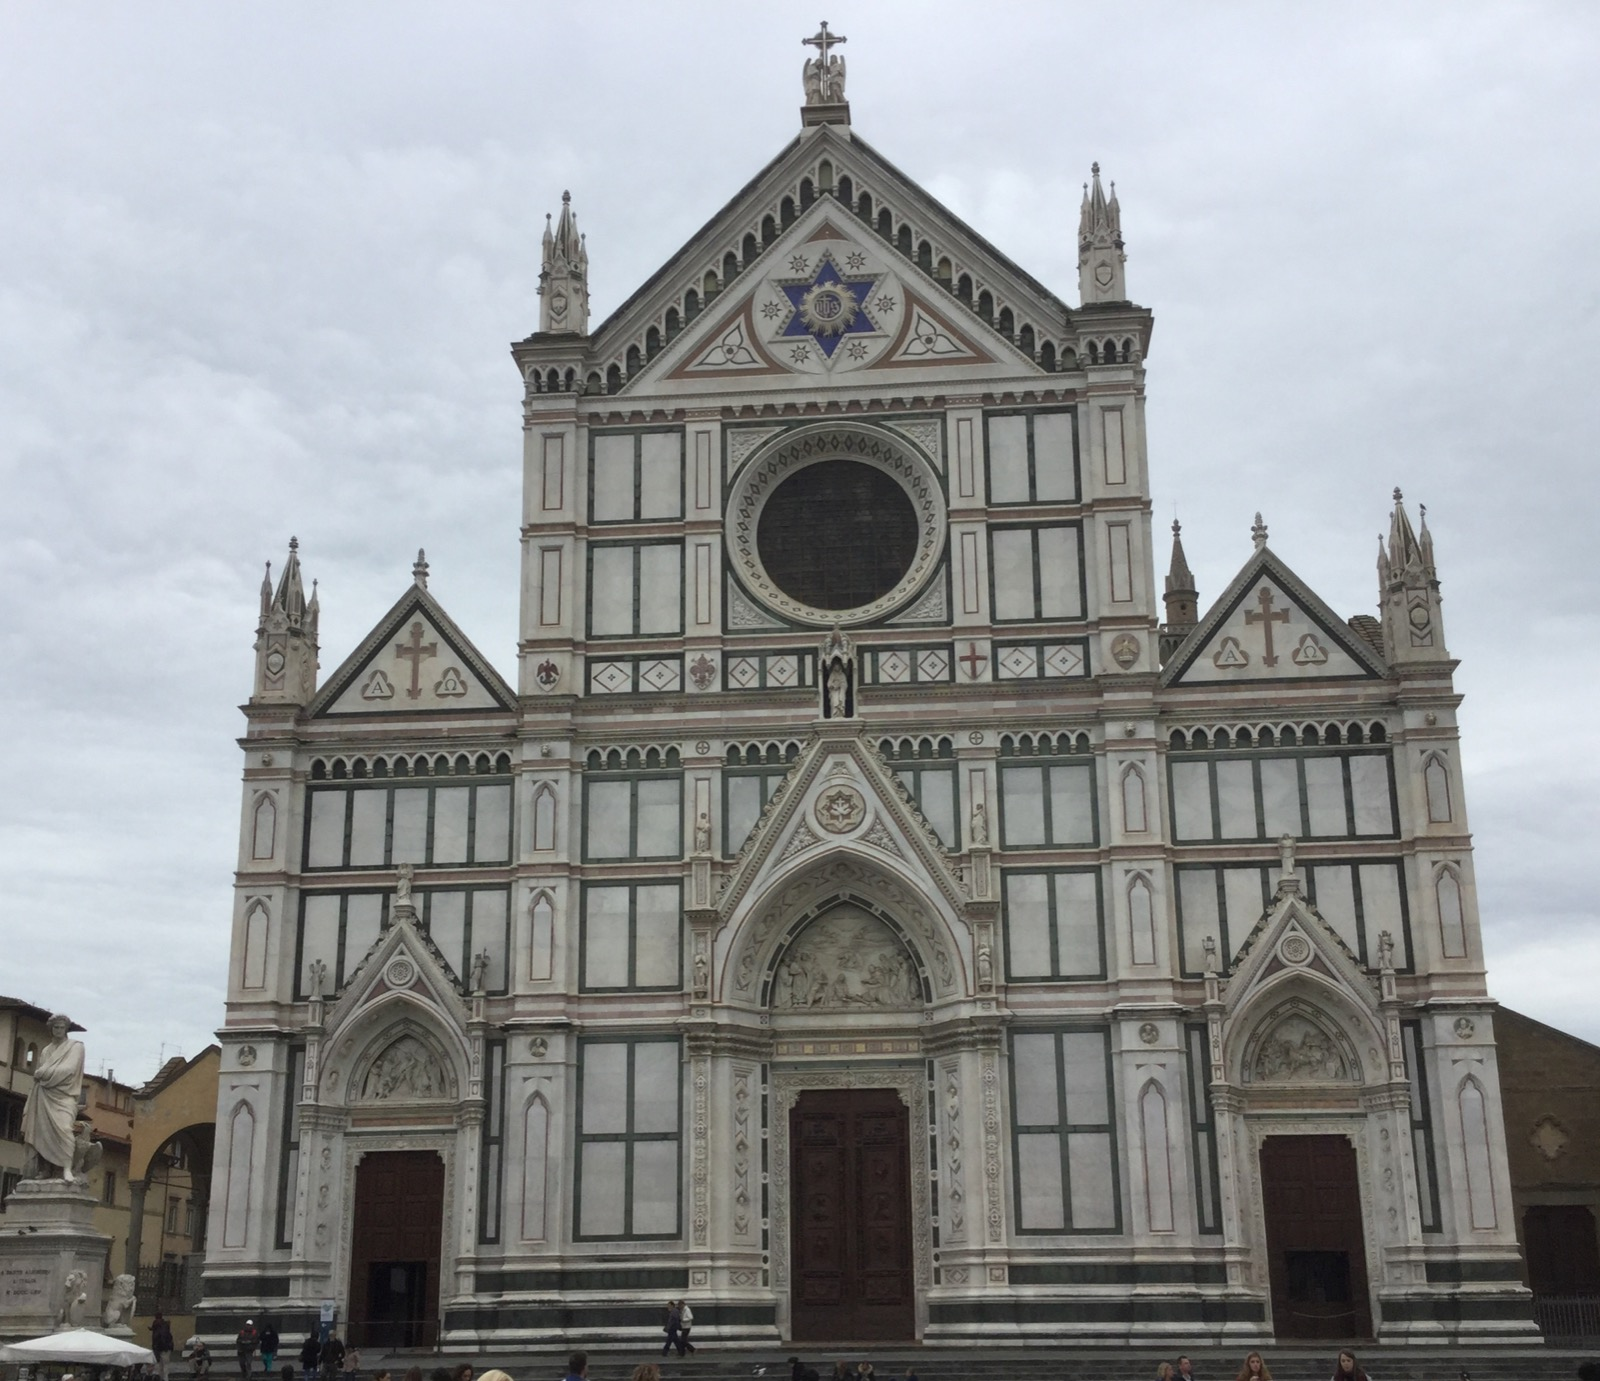 The luscious facade of Santa Croce